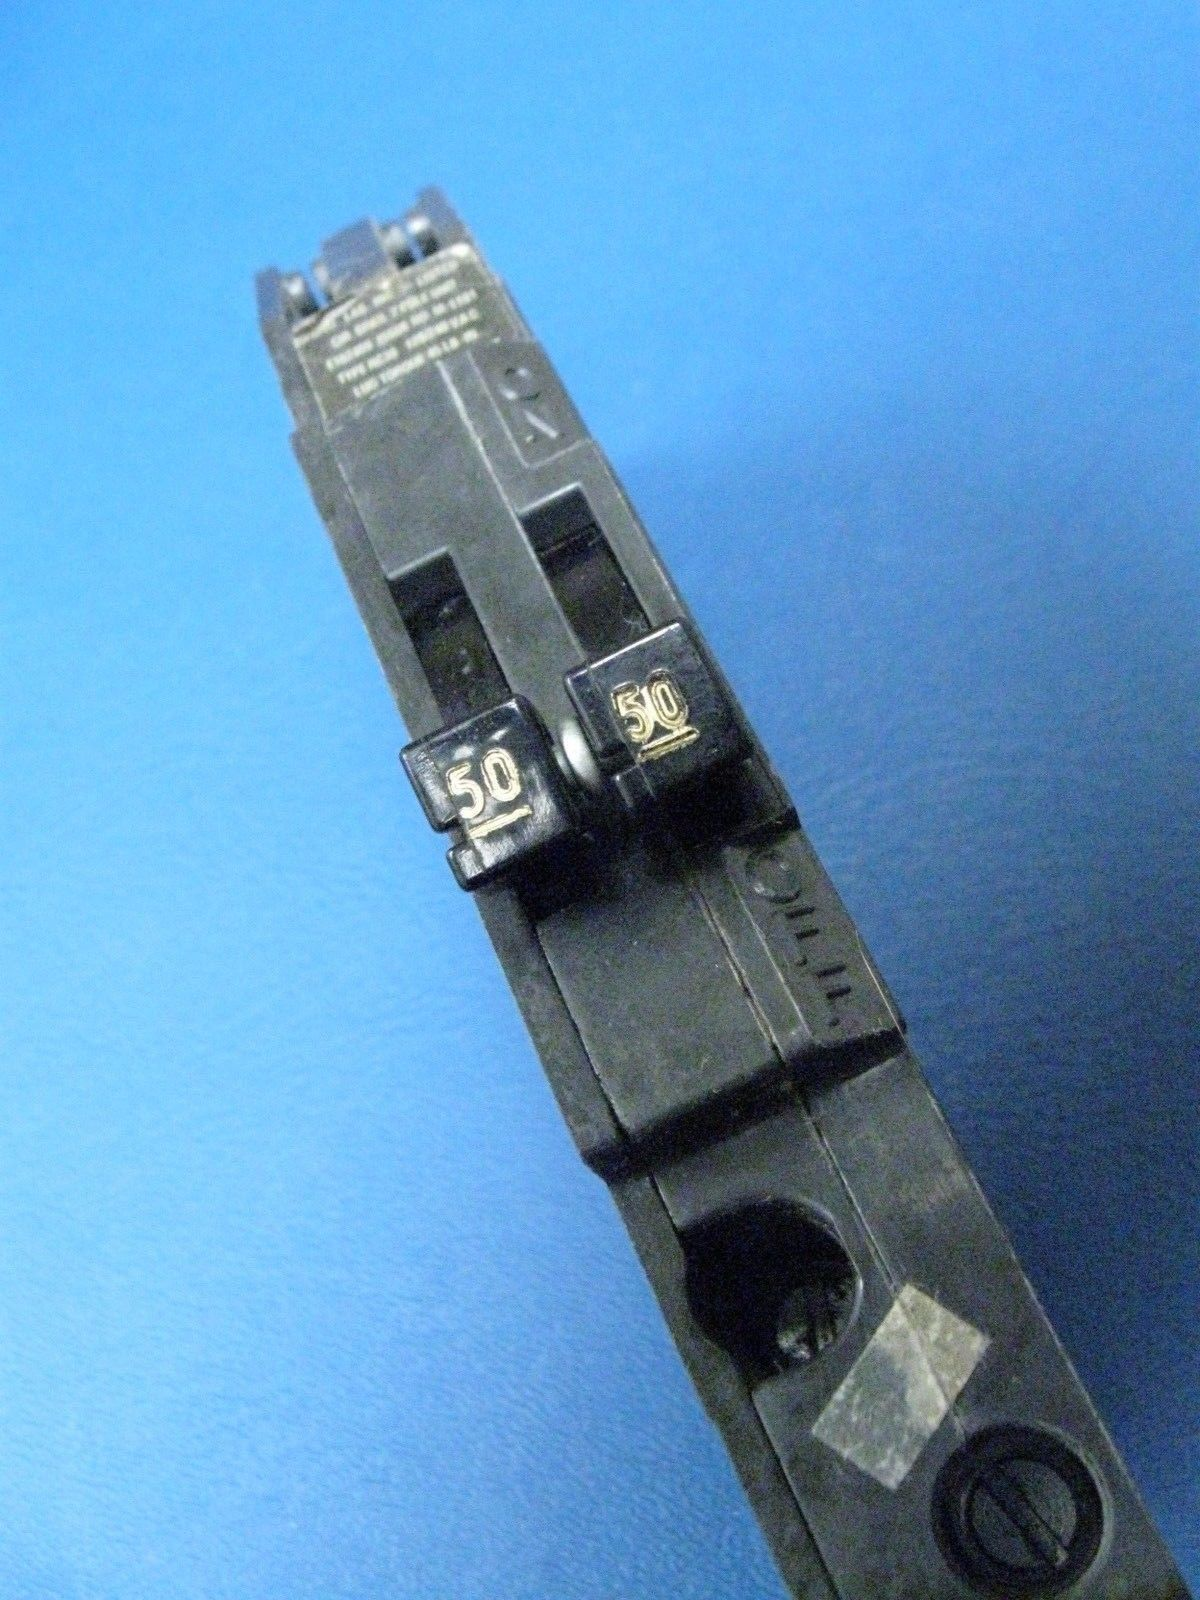 hight resolution of home improvement circuit breakers fuse boxes 20a zinsco or gte sylvania 20 amp double or